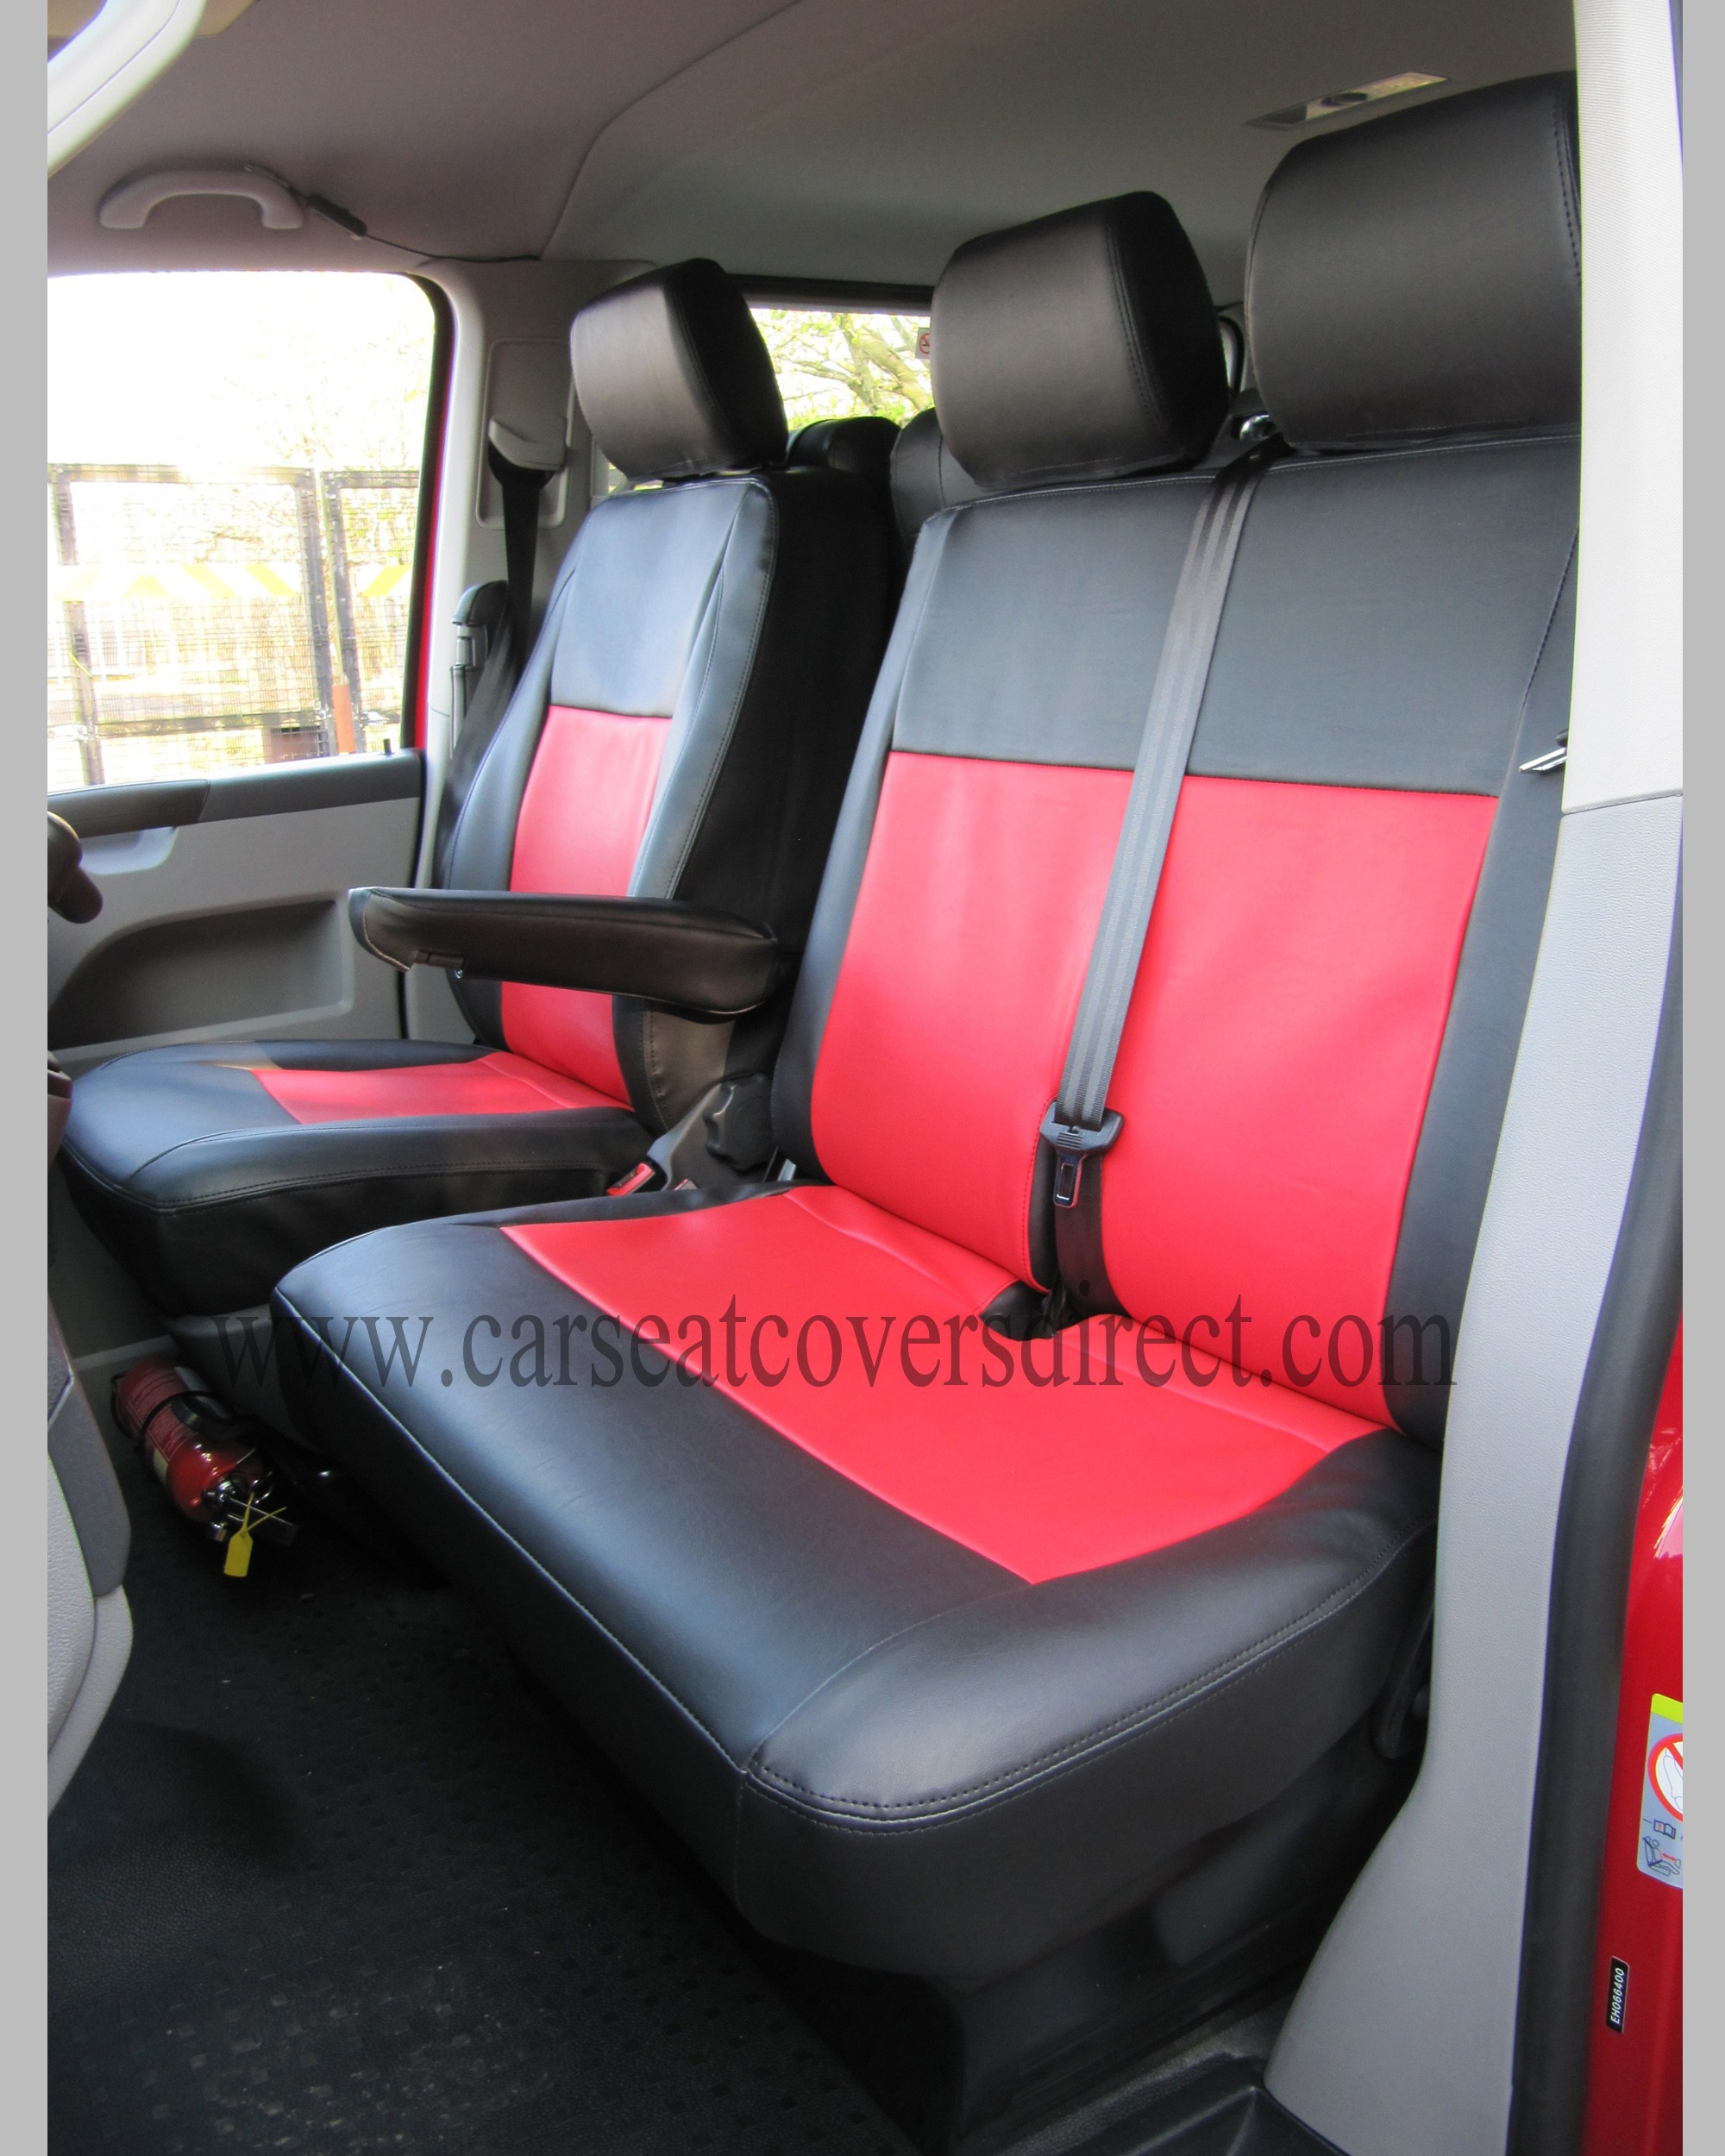 VOLKSWAGEN VW TRANSPORTER T5 9 SEATER Black & Red Seat Covers